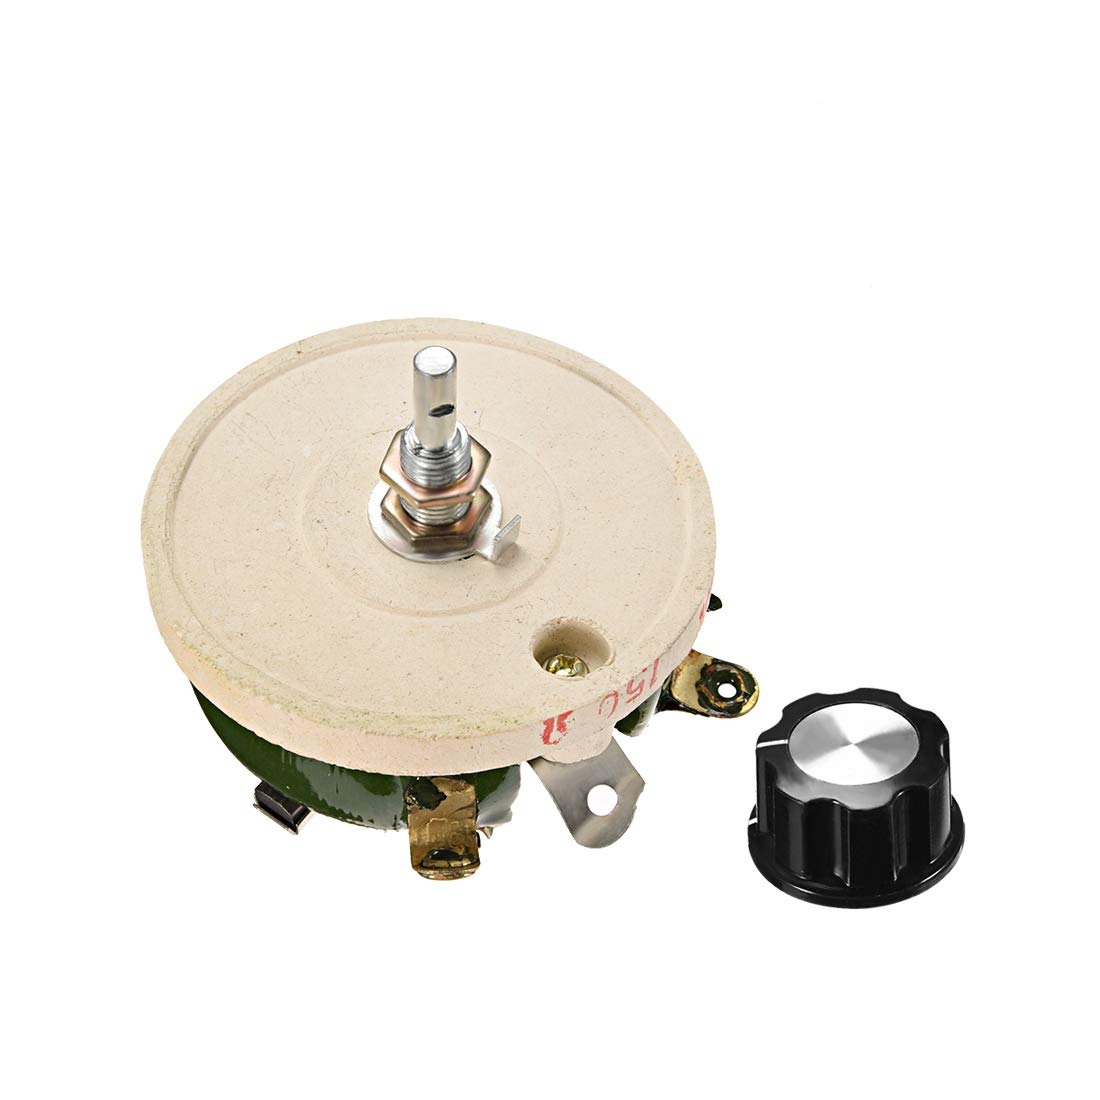 uxcell 100 Ohm 100W High Power Ceramic Wirewound Potentiometer with Knob Rheostat Variable Resistor